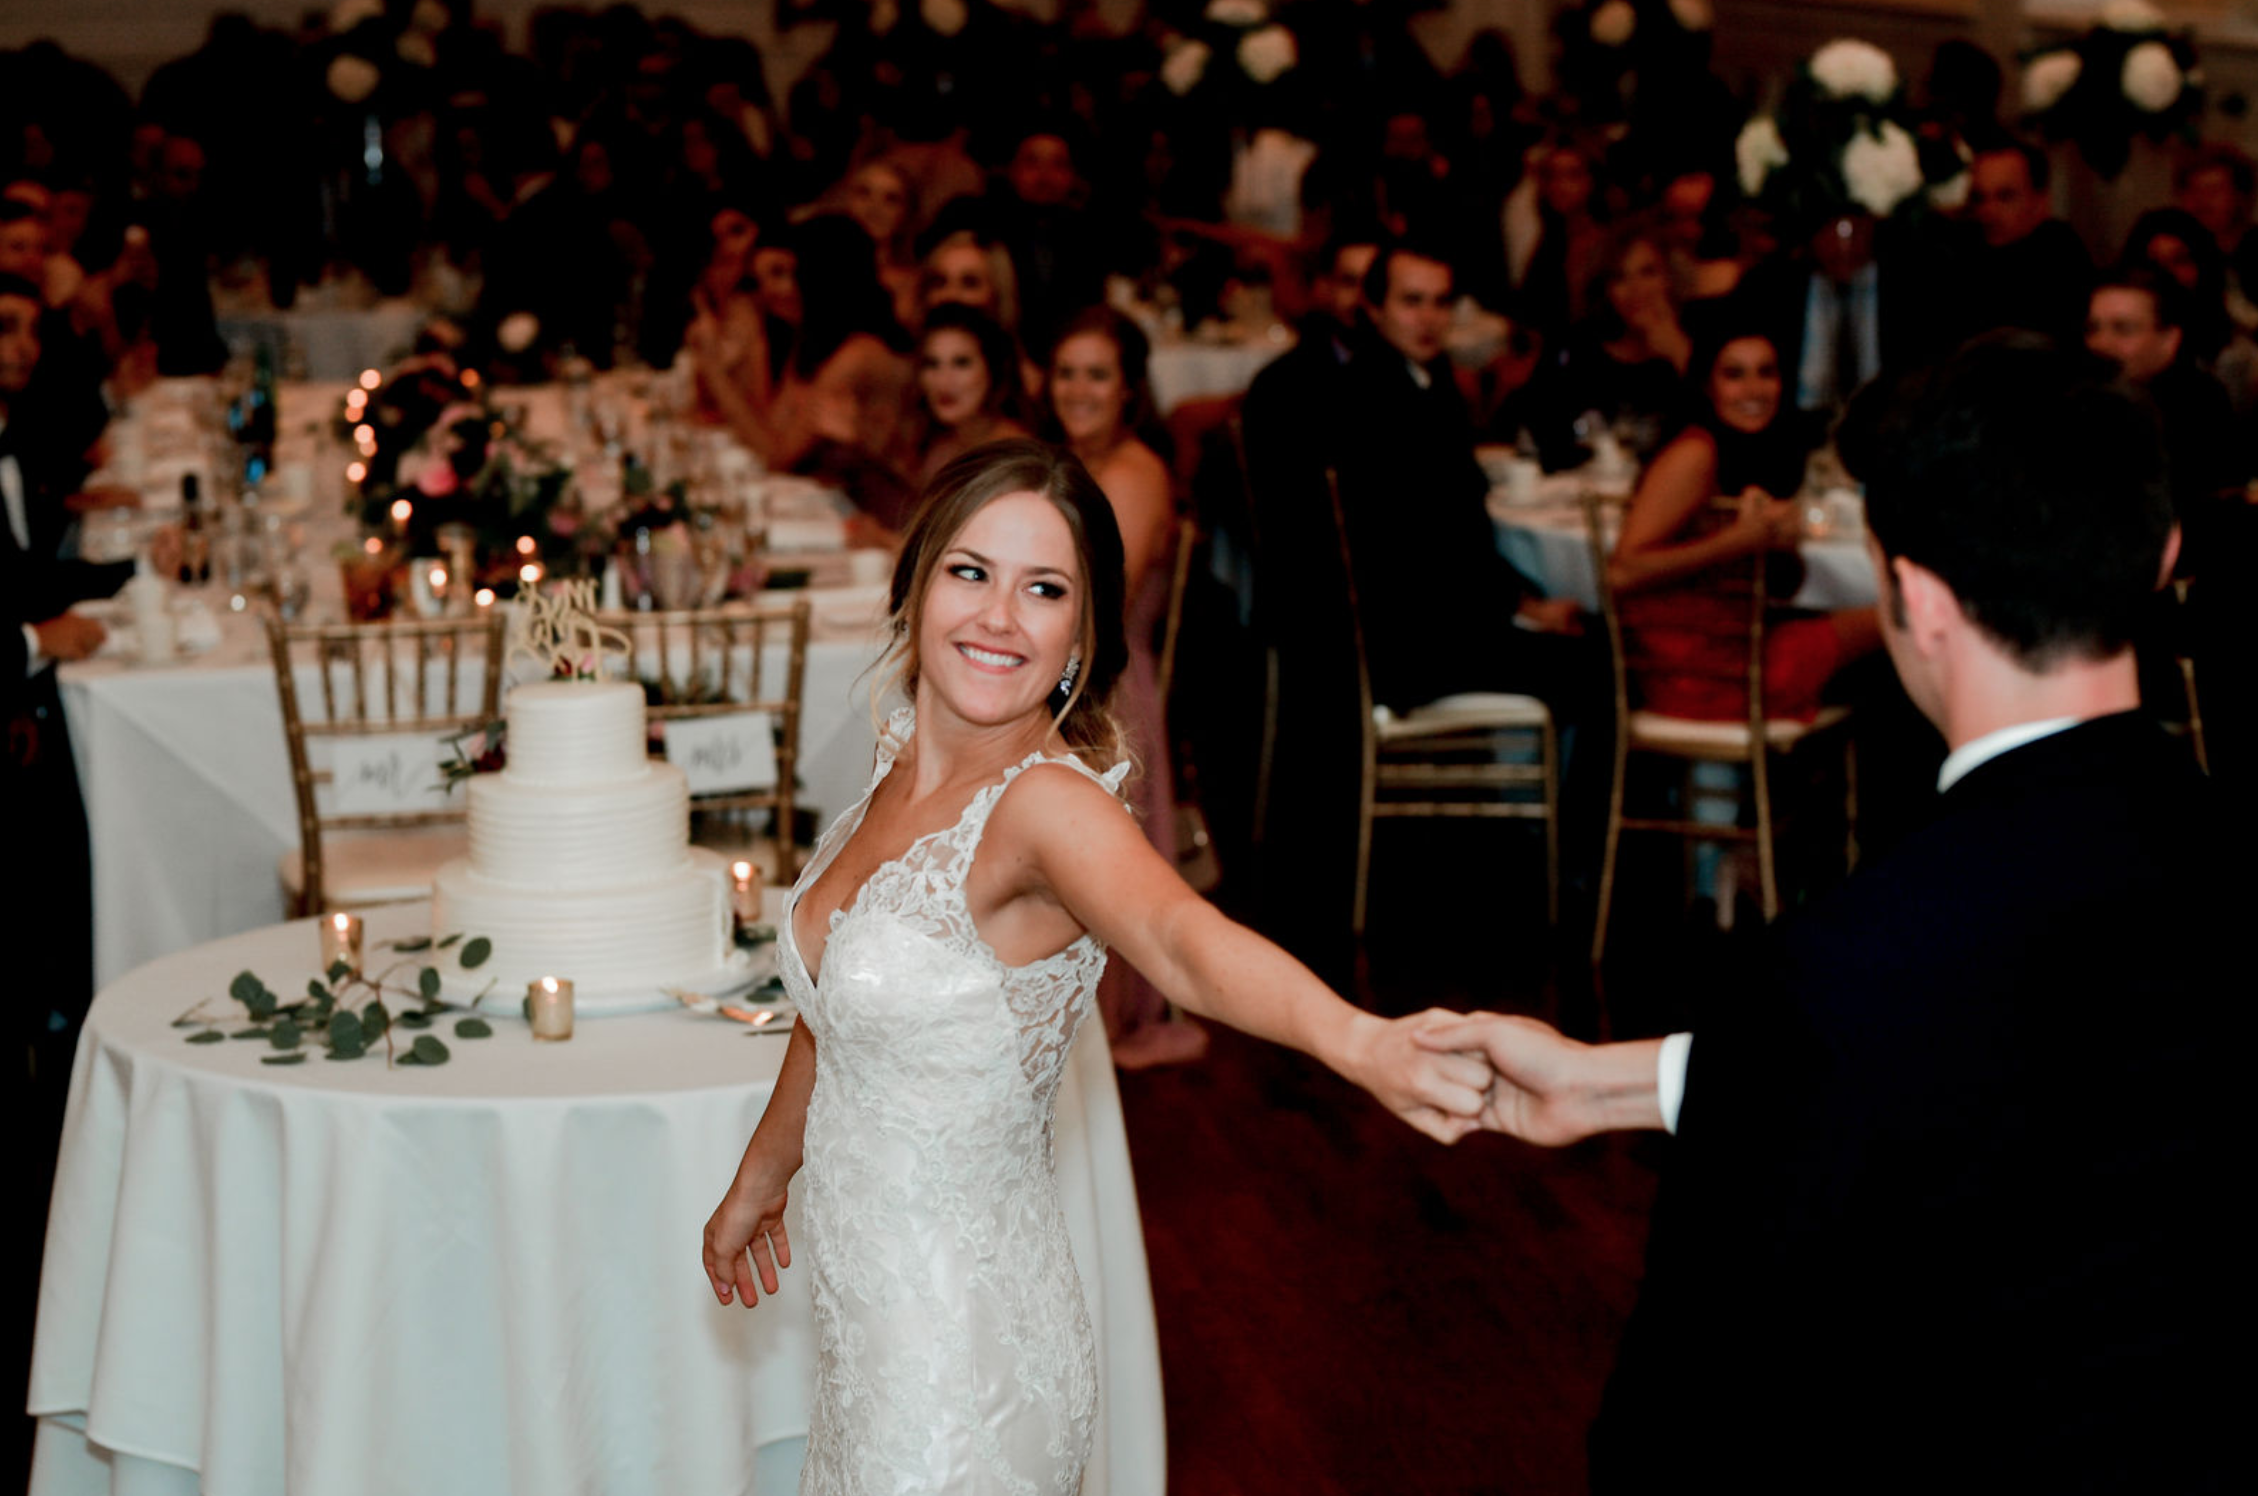 Bride and groom share first dance at Buffalo, NY wedding planned by Exhale Events. Find more wedding inspiration at exhale-events.com!